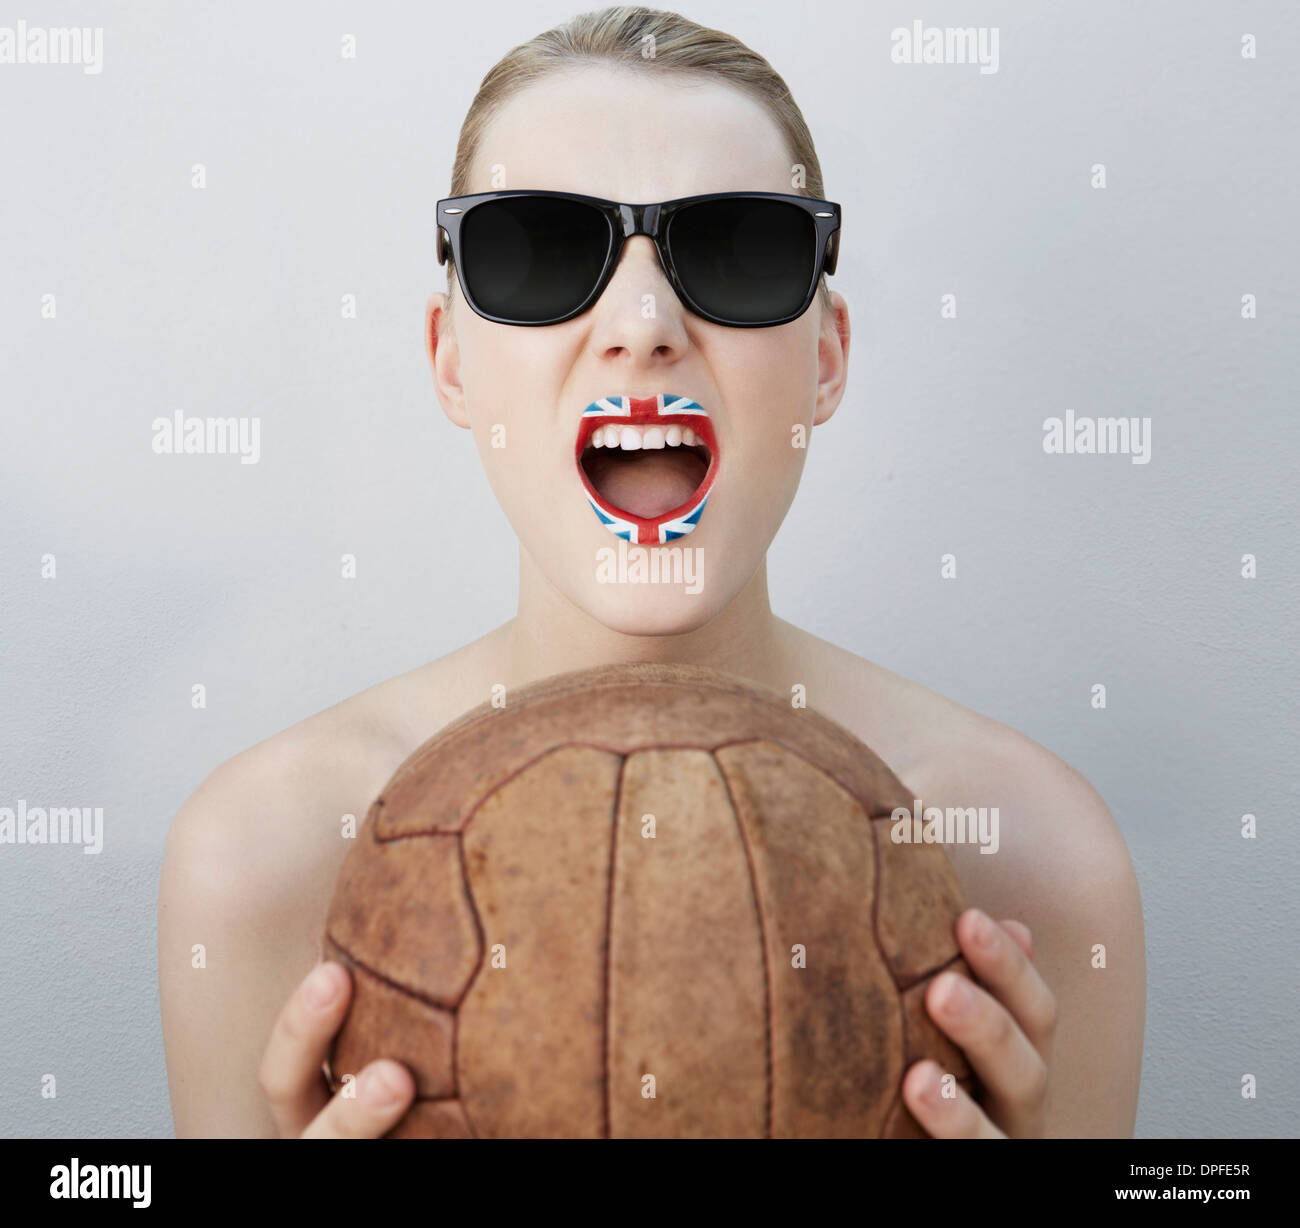 Woman with British flag lipstick, holding soccer ball - Stock Image